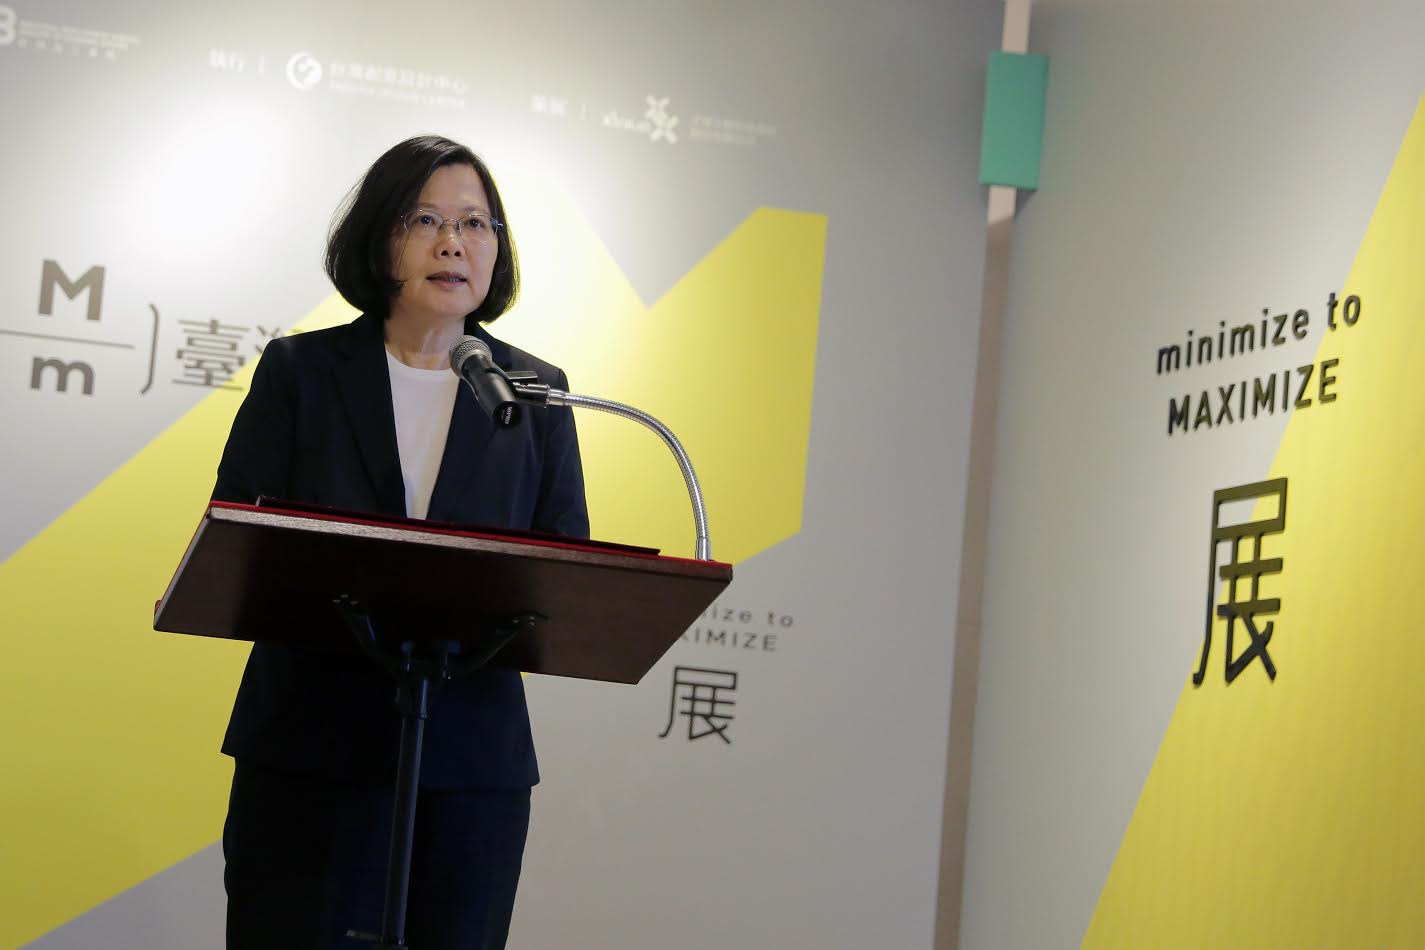 Design M/m Taiwan exhibition opens in Presidential Office Building